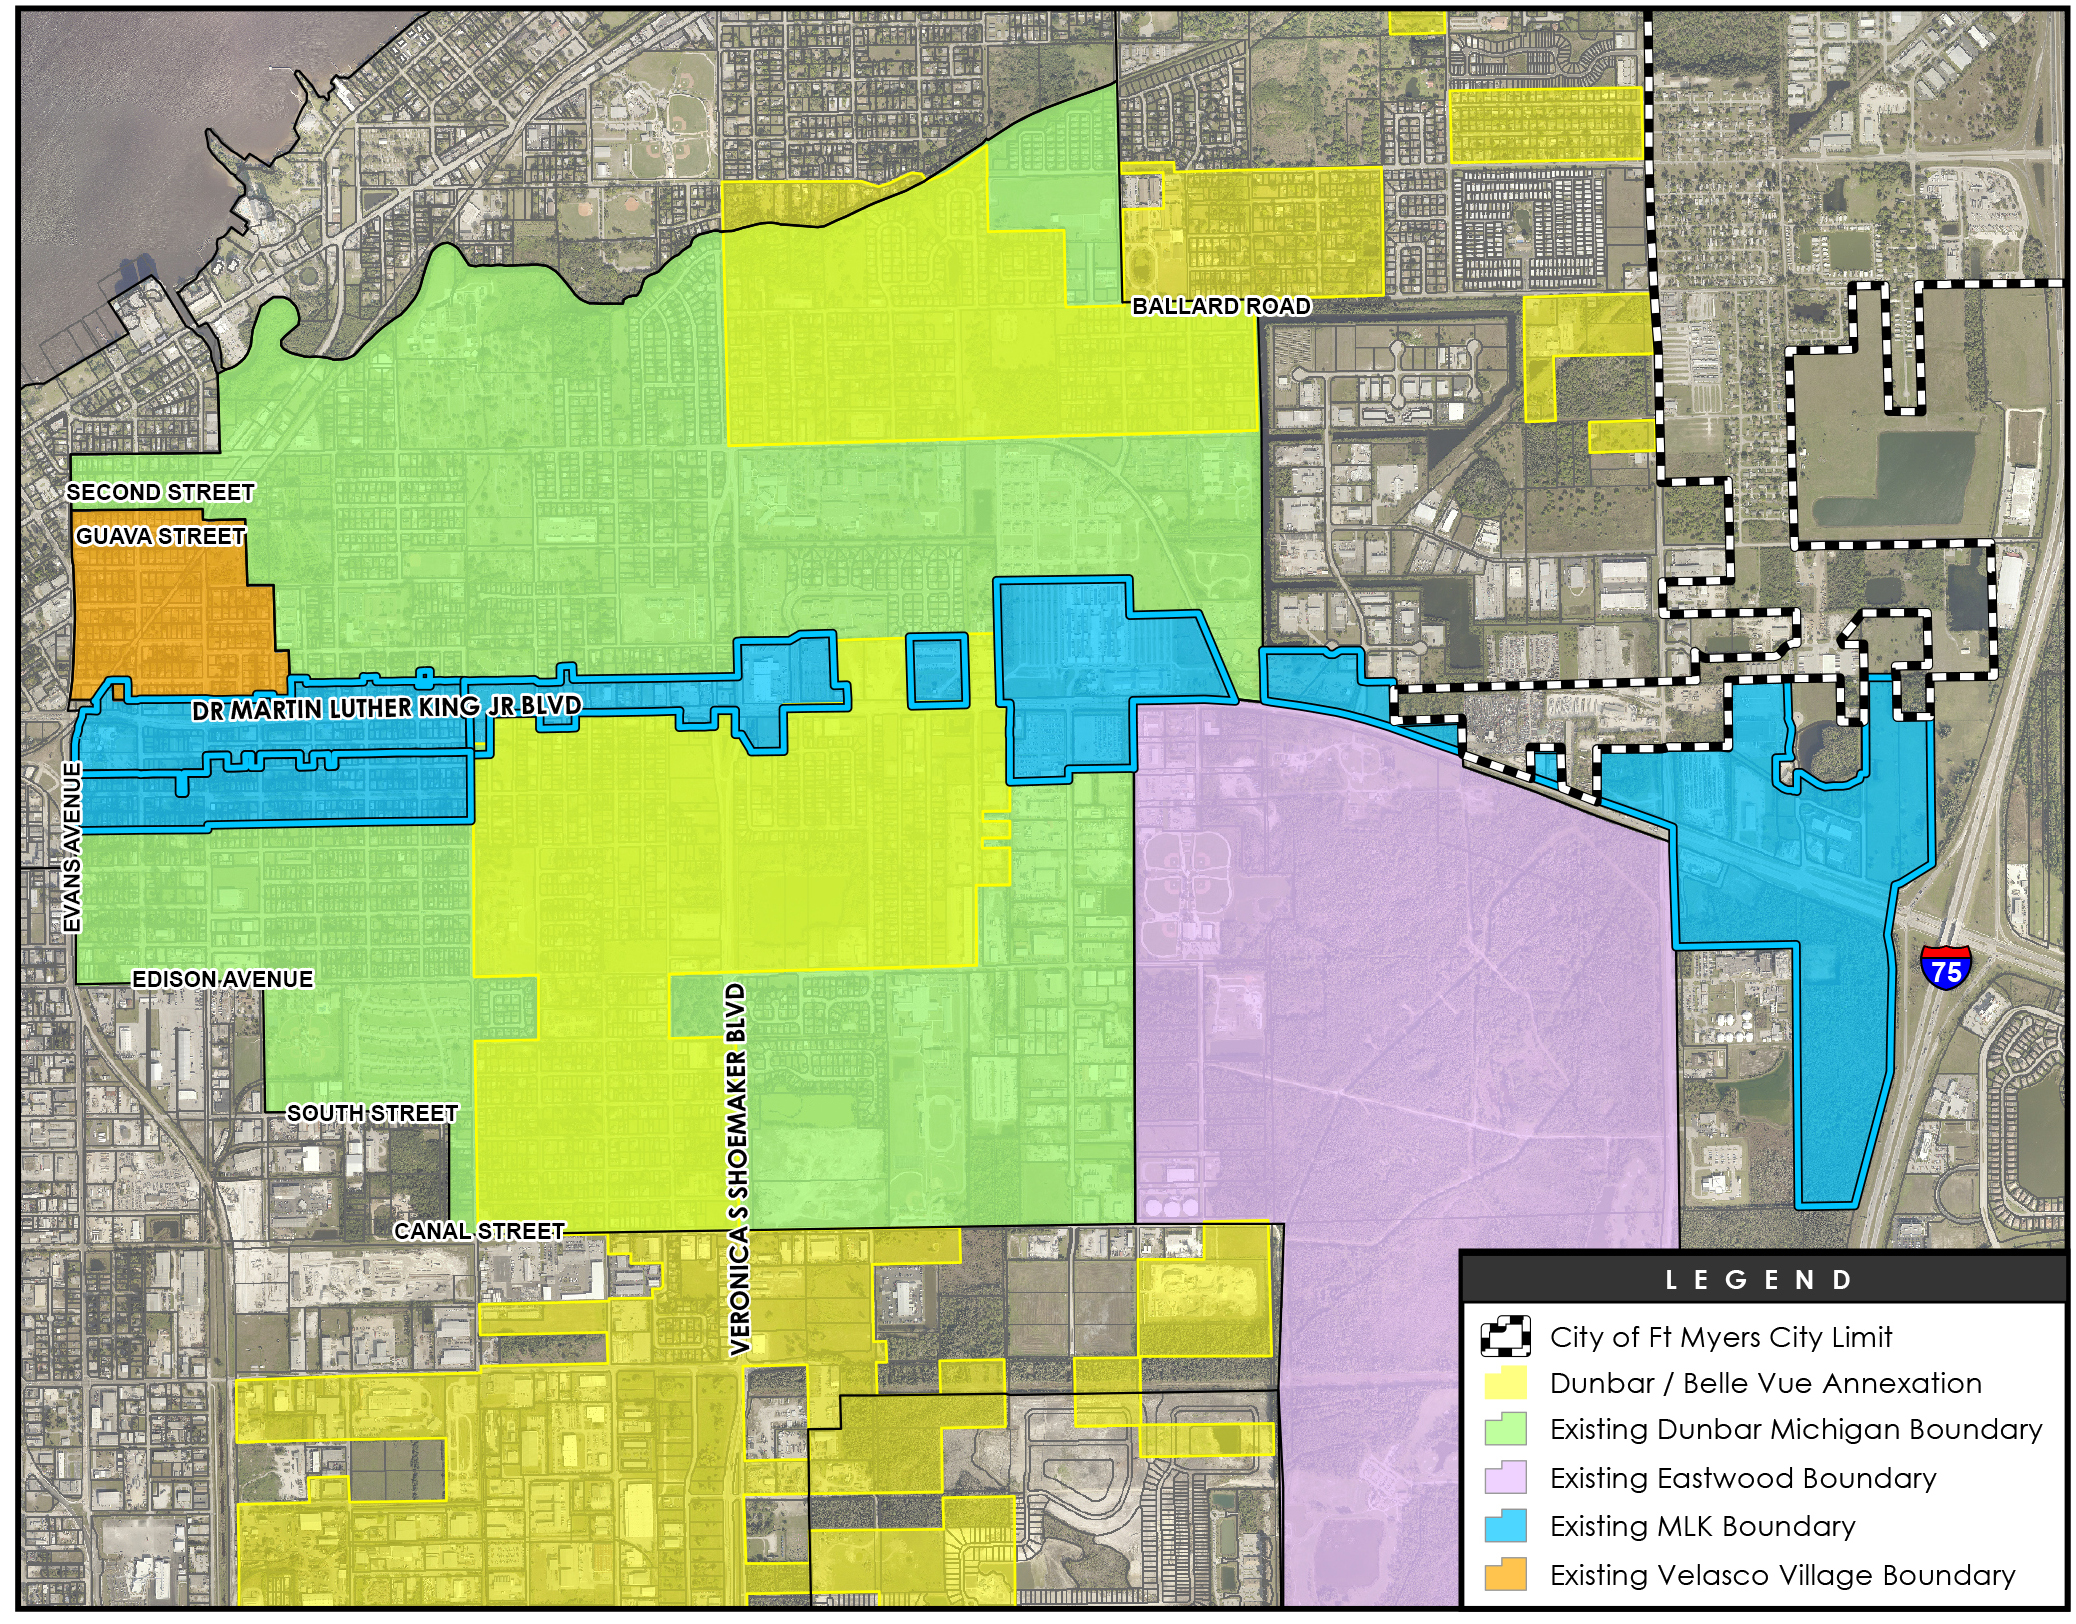 Several redevelopment areas exist within the general MLK/Dunbar/Michigan area.  There has also been significant annexation from Lee County in 2003 to enable the city to plan for redevelopment.